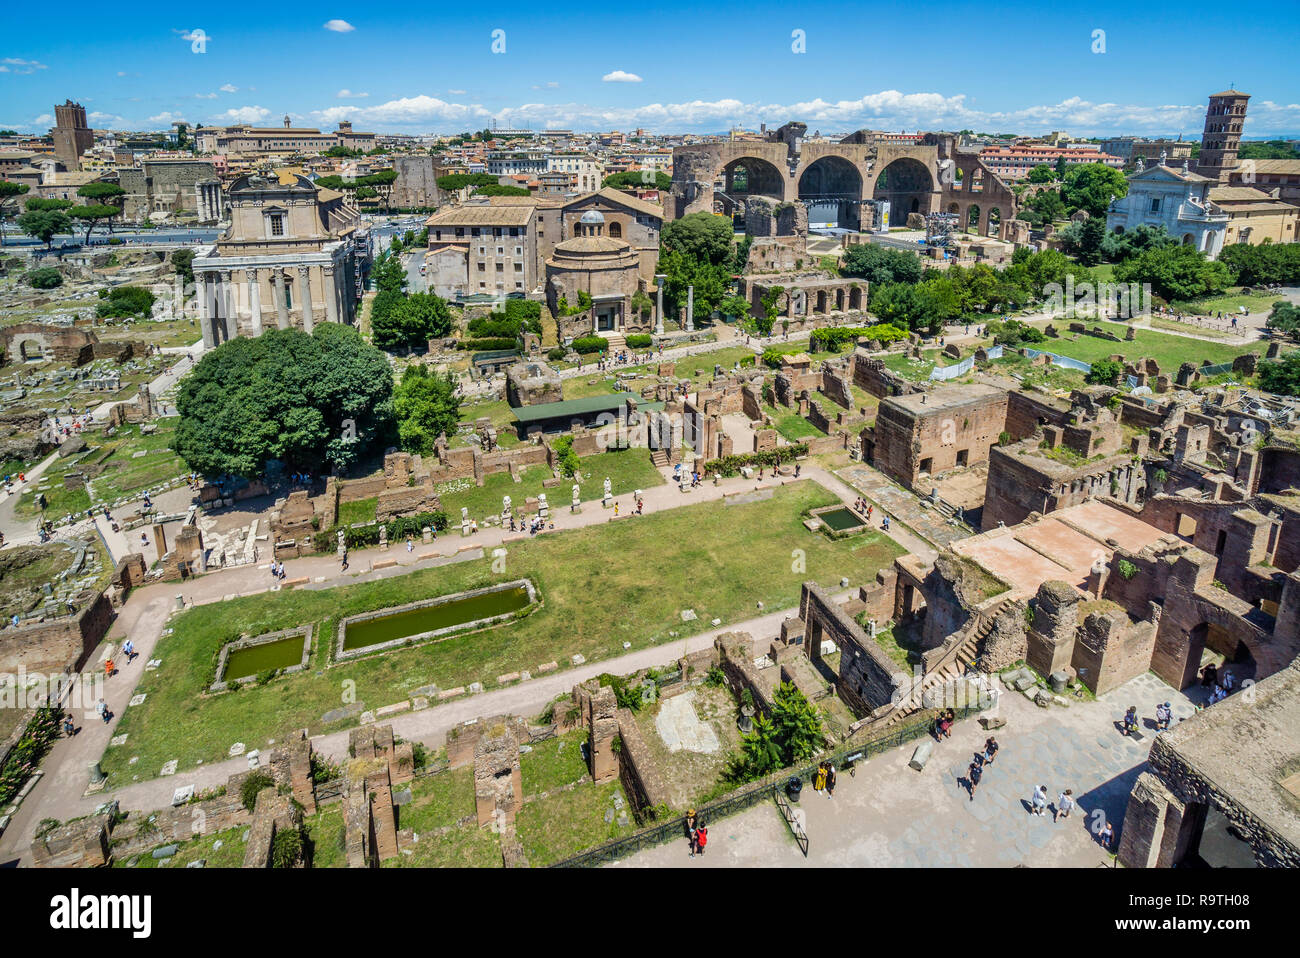 the Roman Forum with view of the remains of the House of the Vestals, the Via Sacra, the Temple of Romulus, the remaining nave Basilica of Maxentius - Stock Image